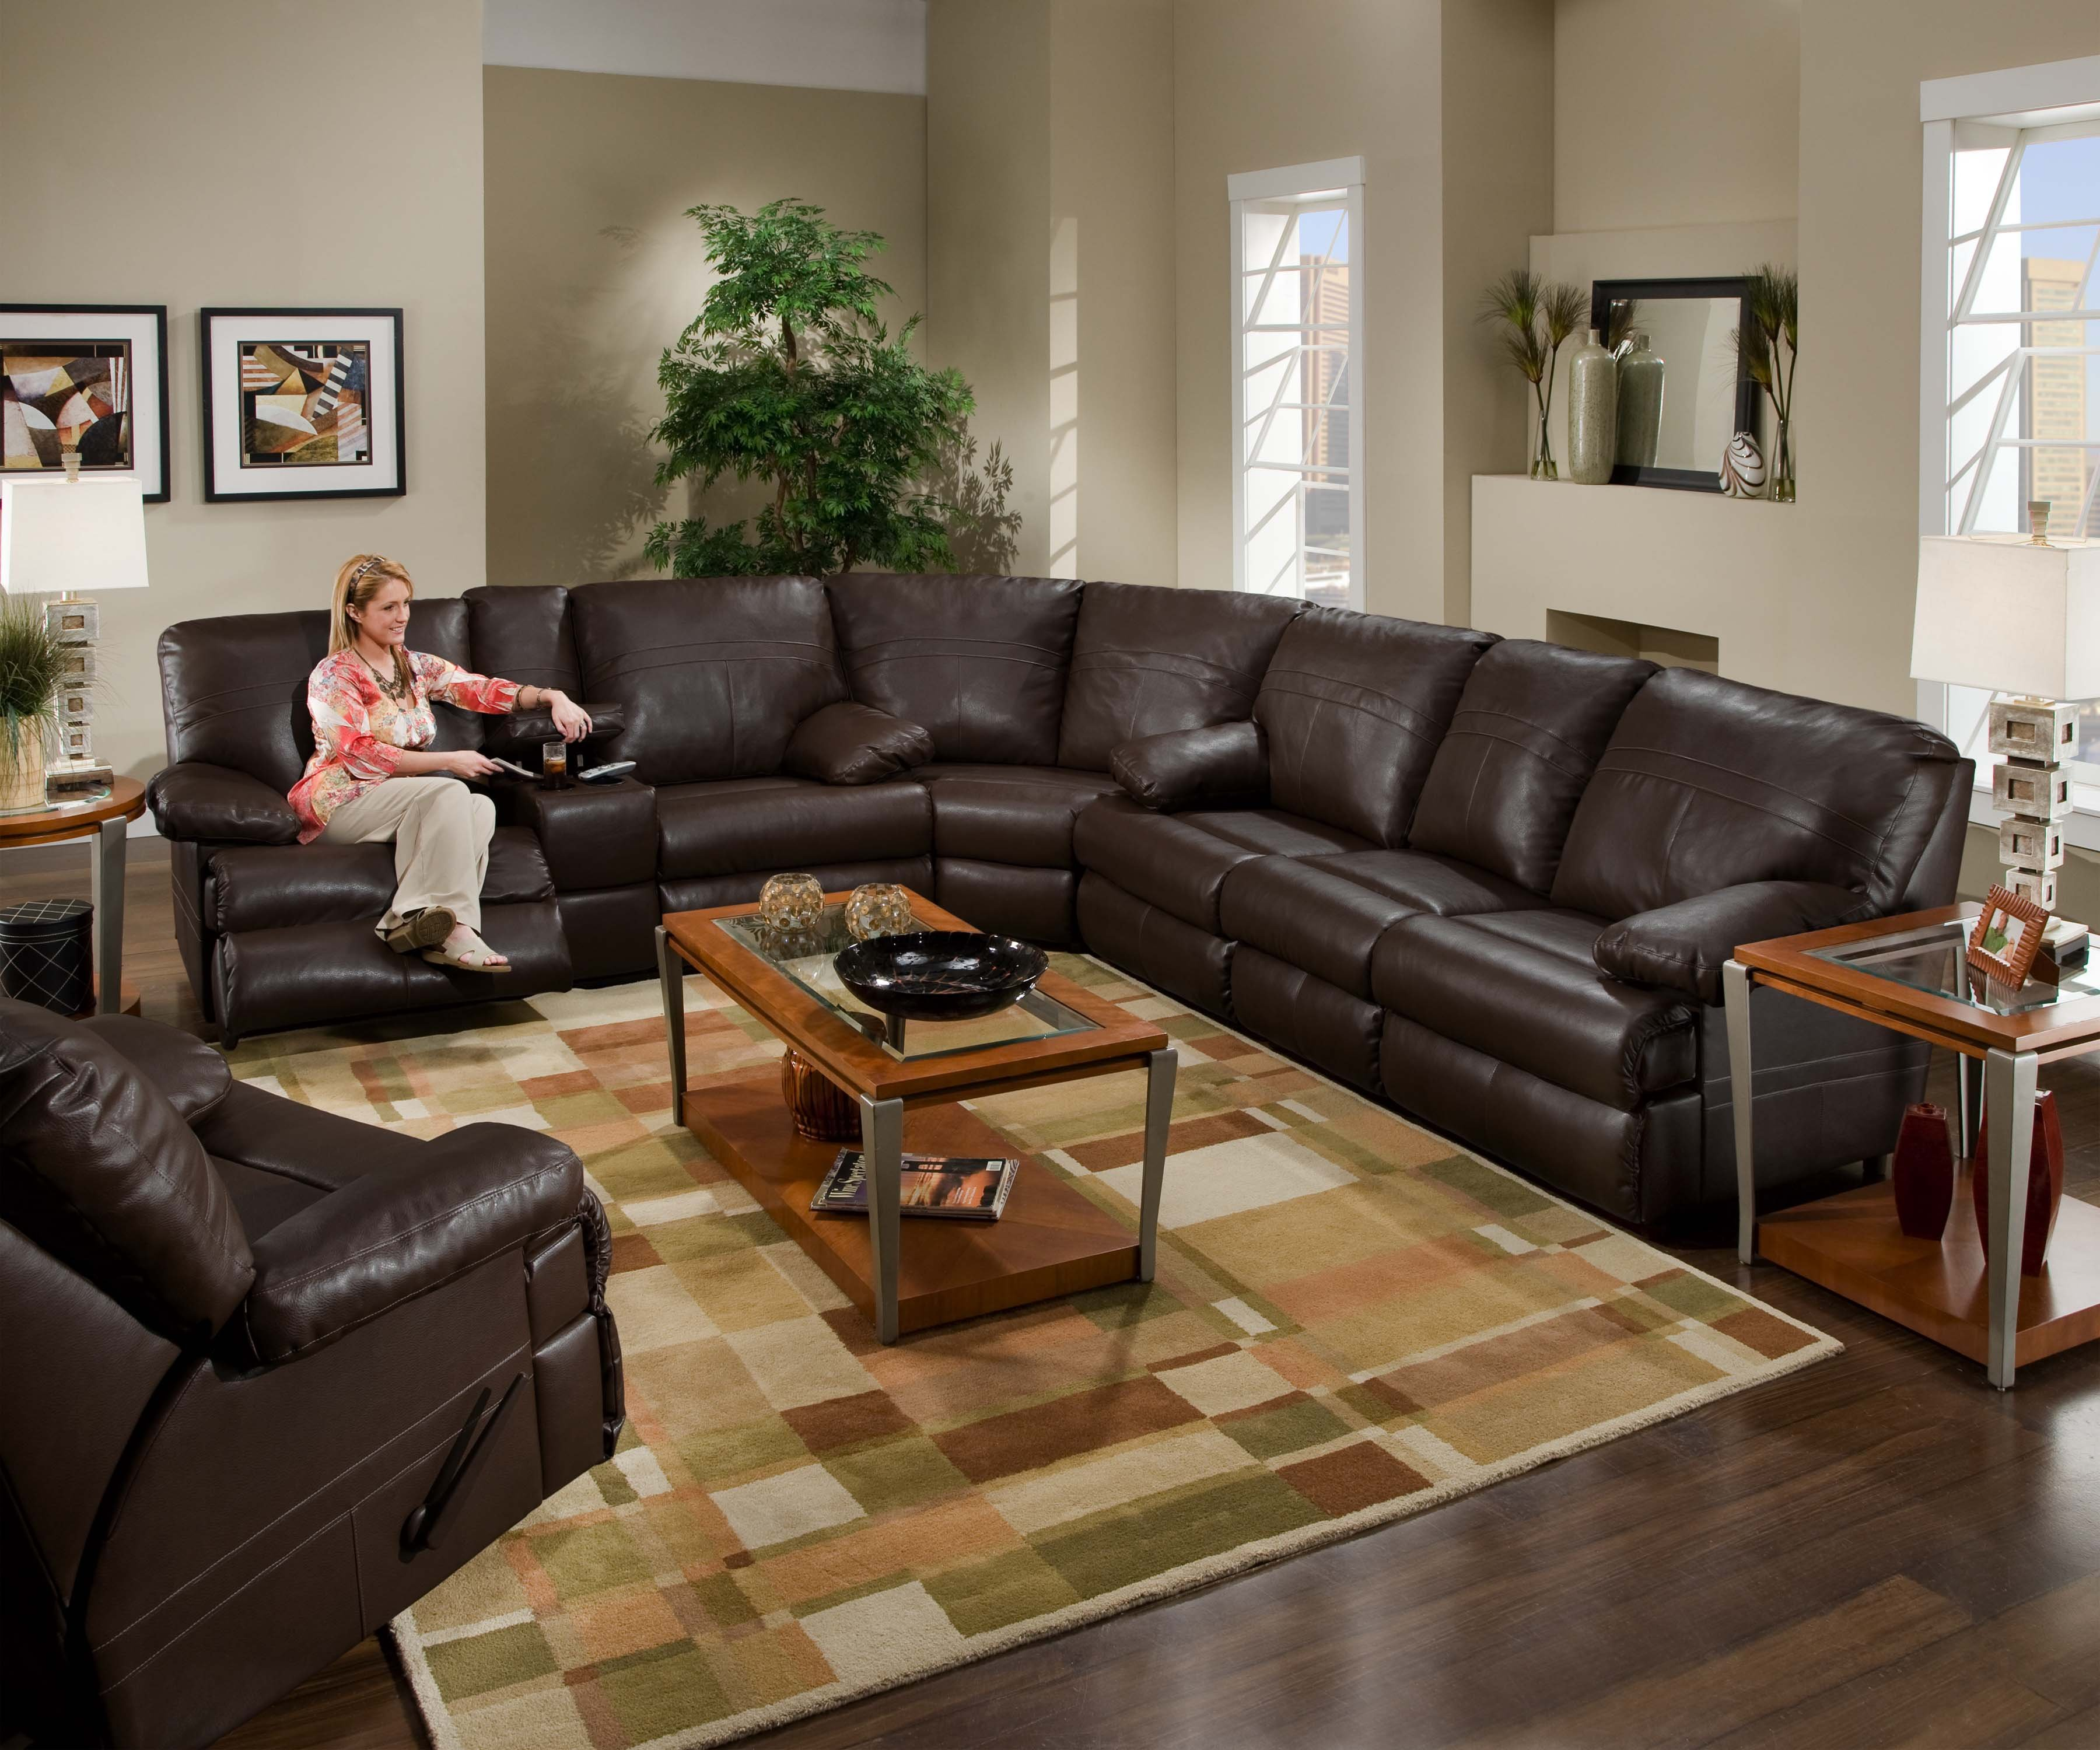 Large Sectional Sofas | Lazy Boy Sectional | Cuddler Sectional